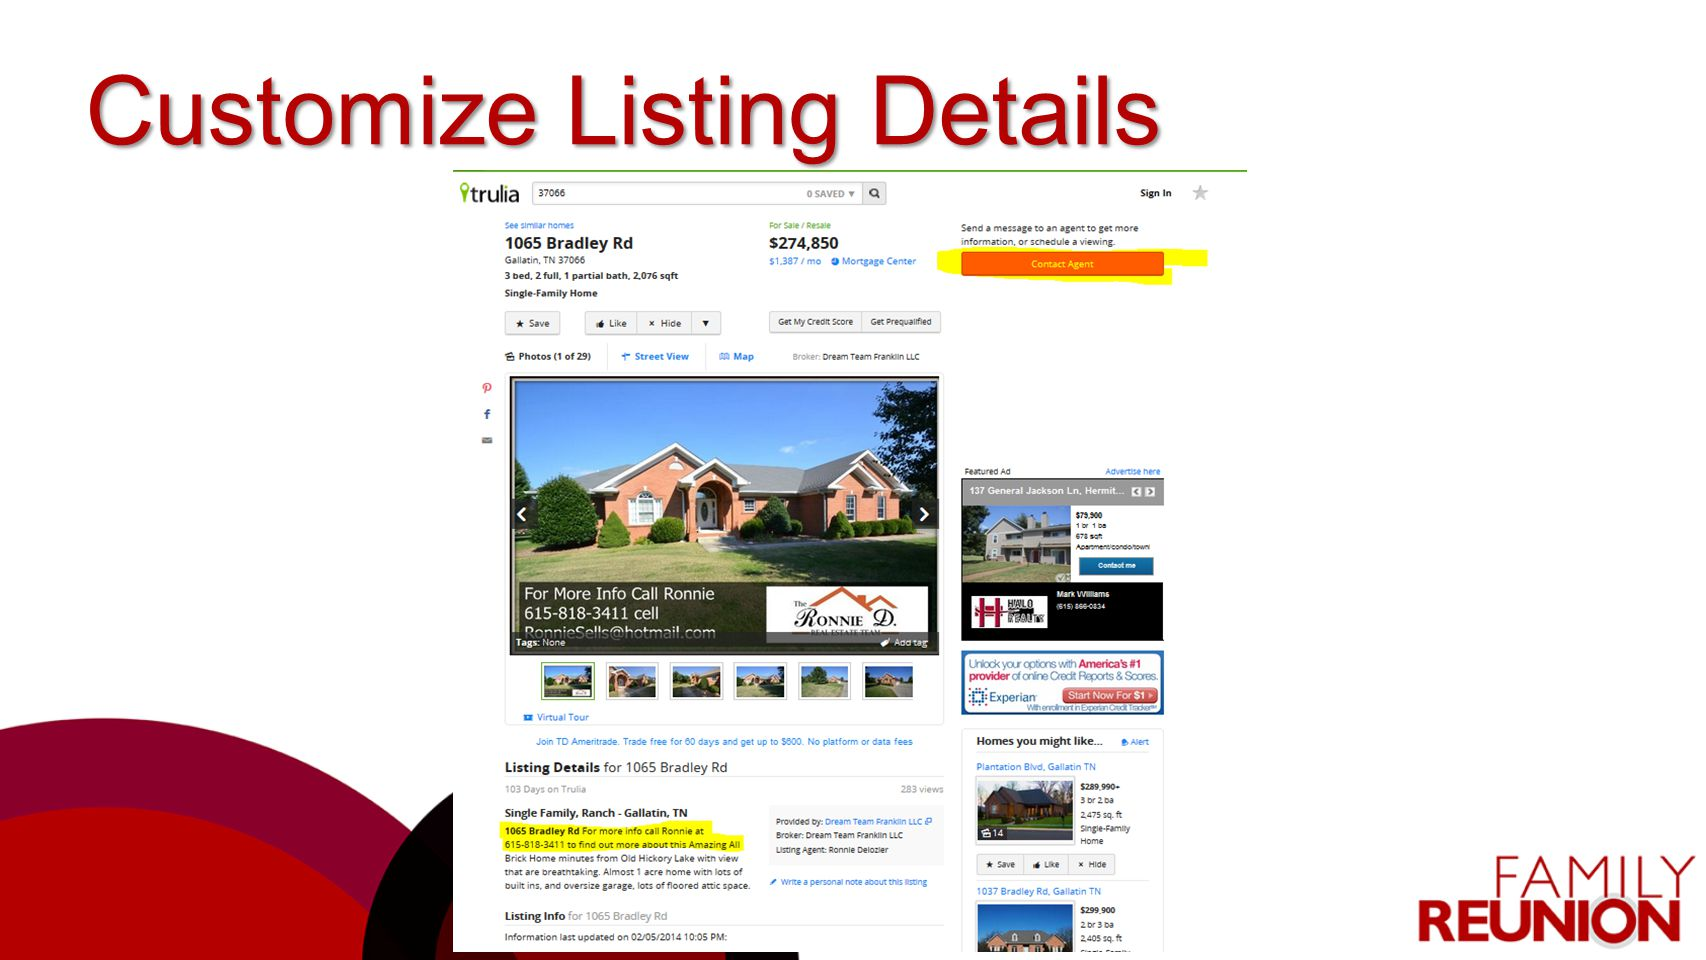 Customize Listing Details